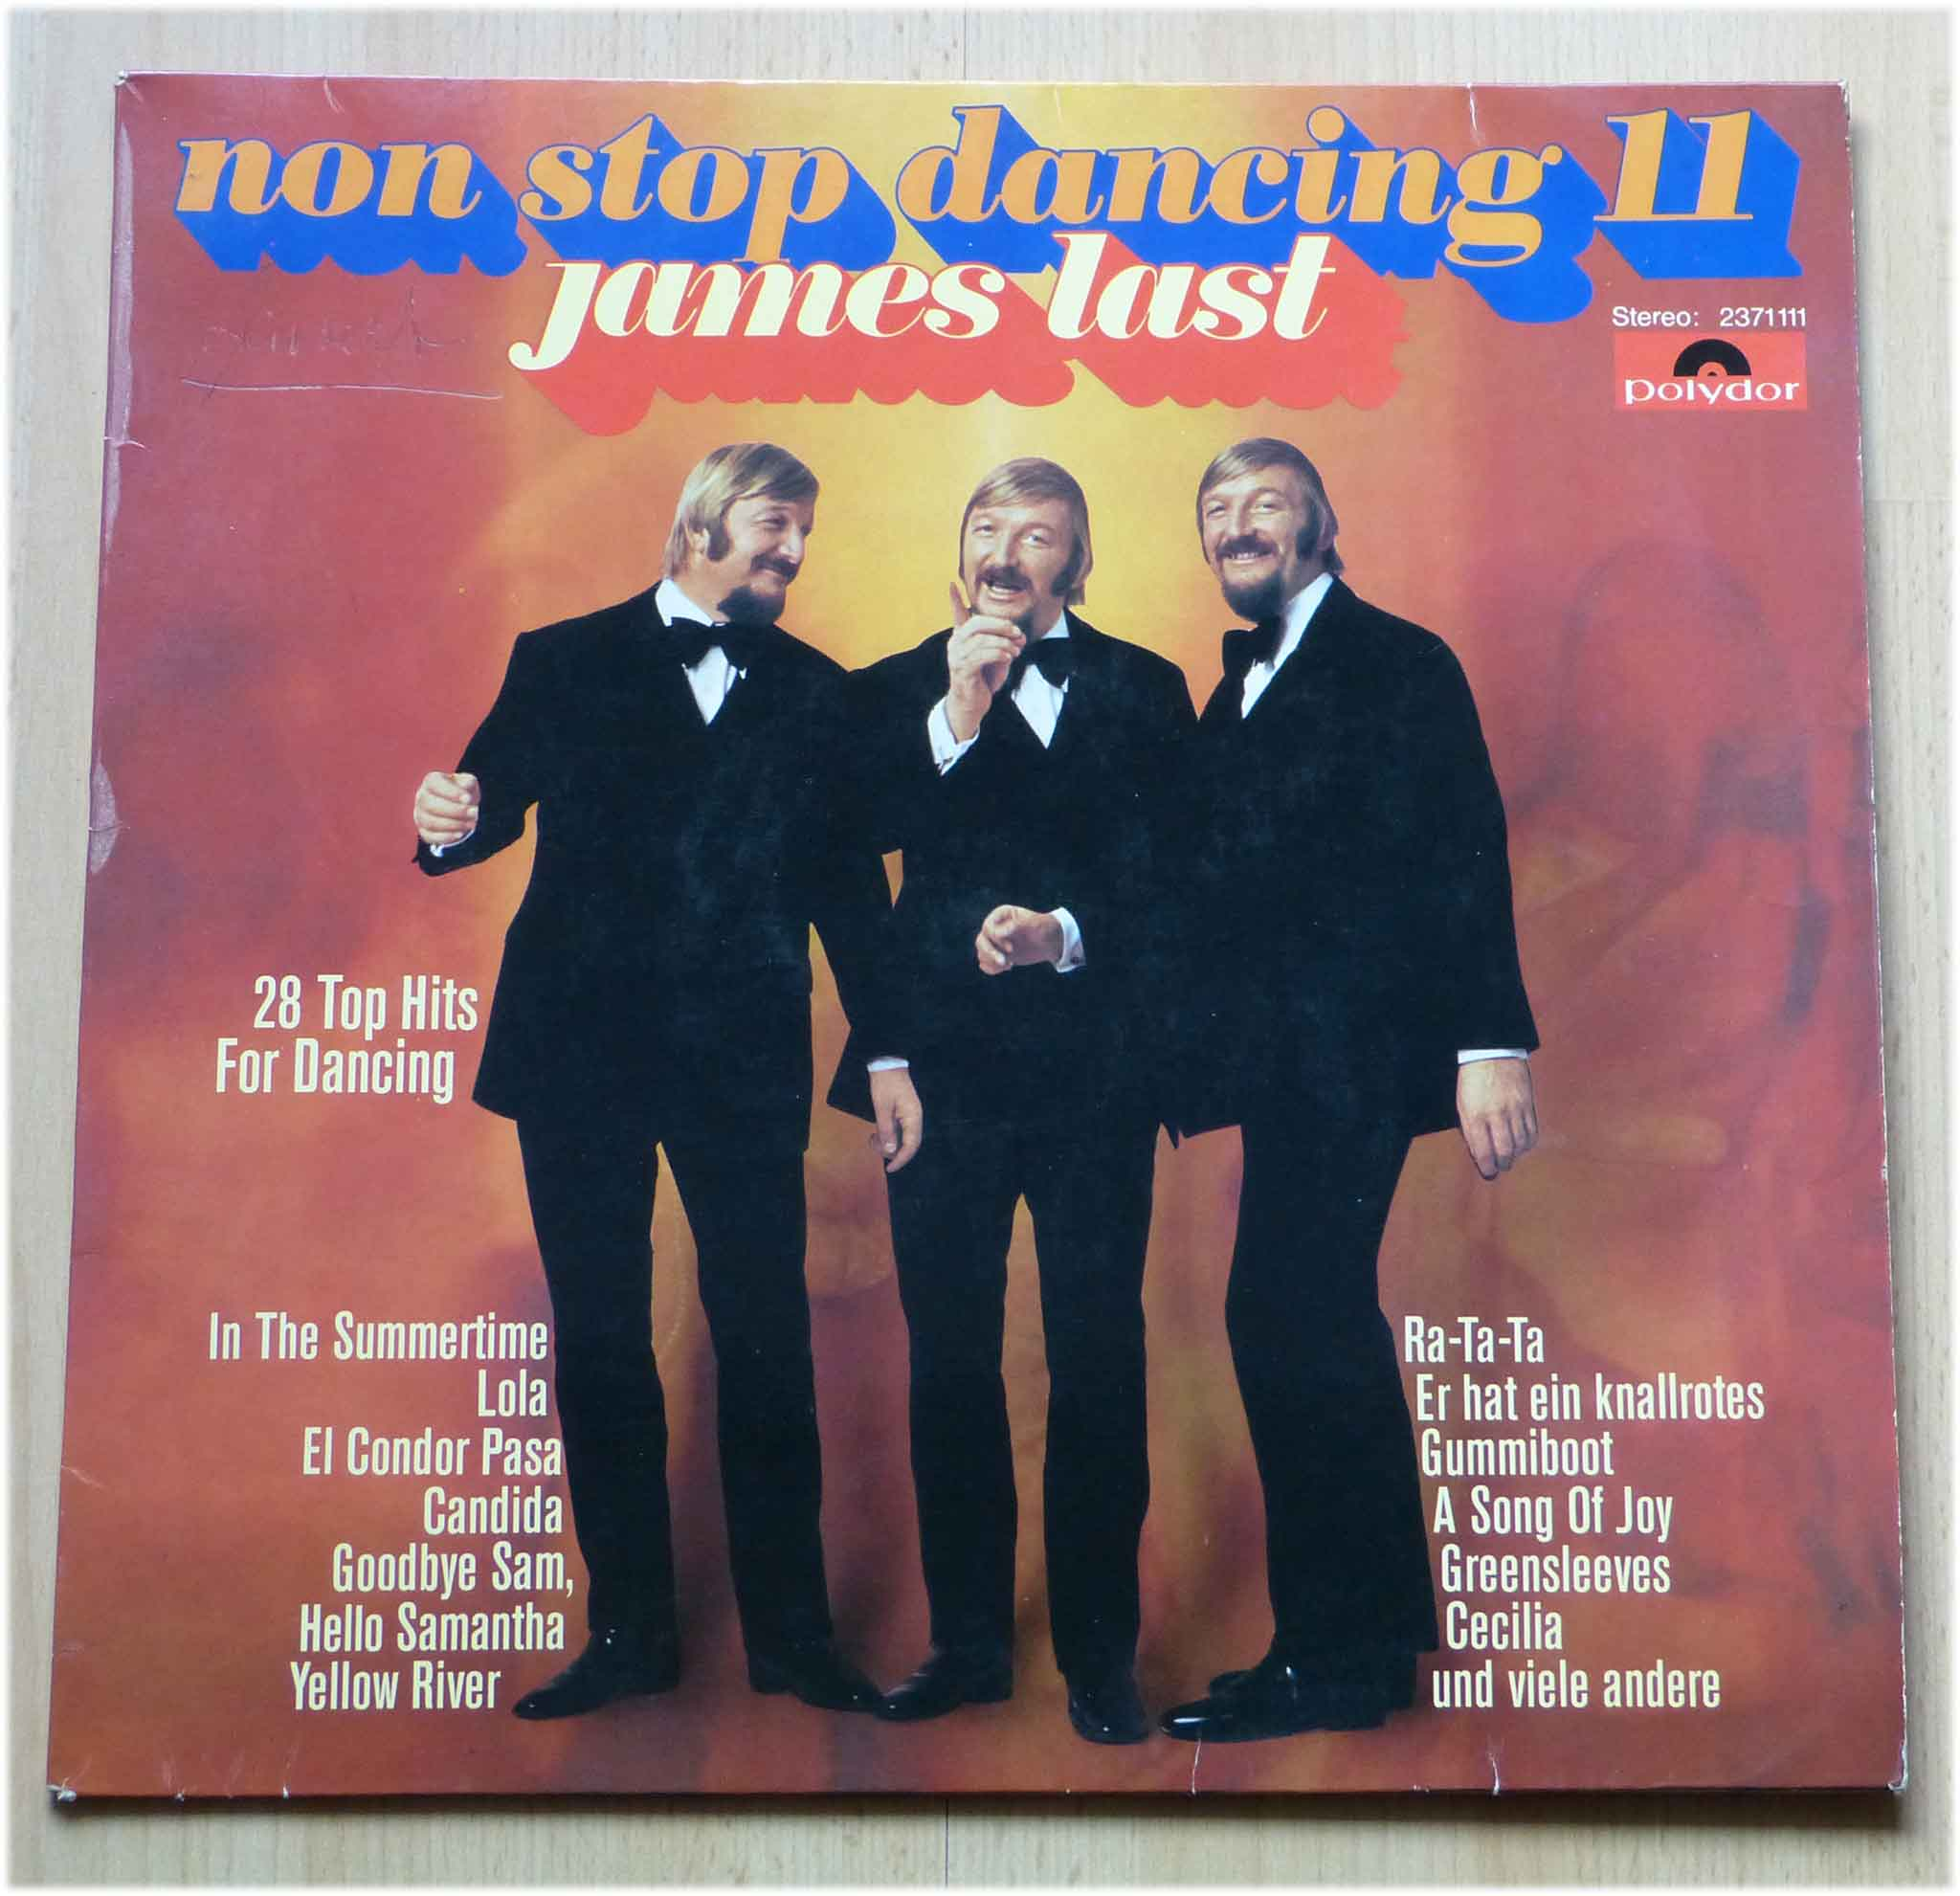 James Last - Non Stop Dancing